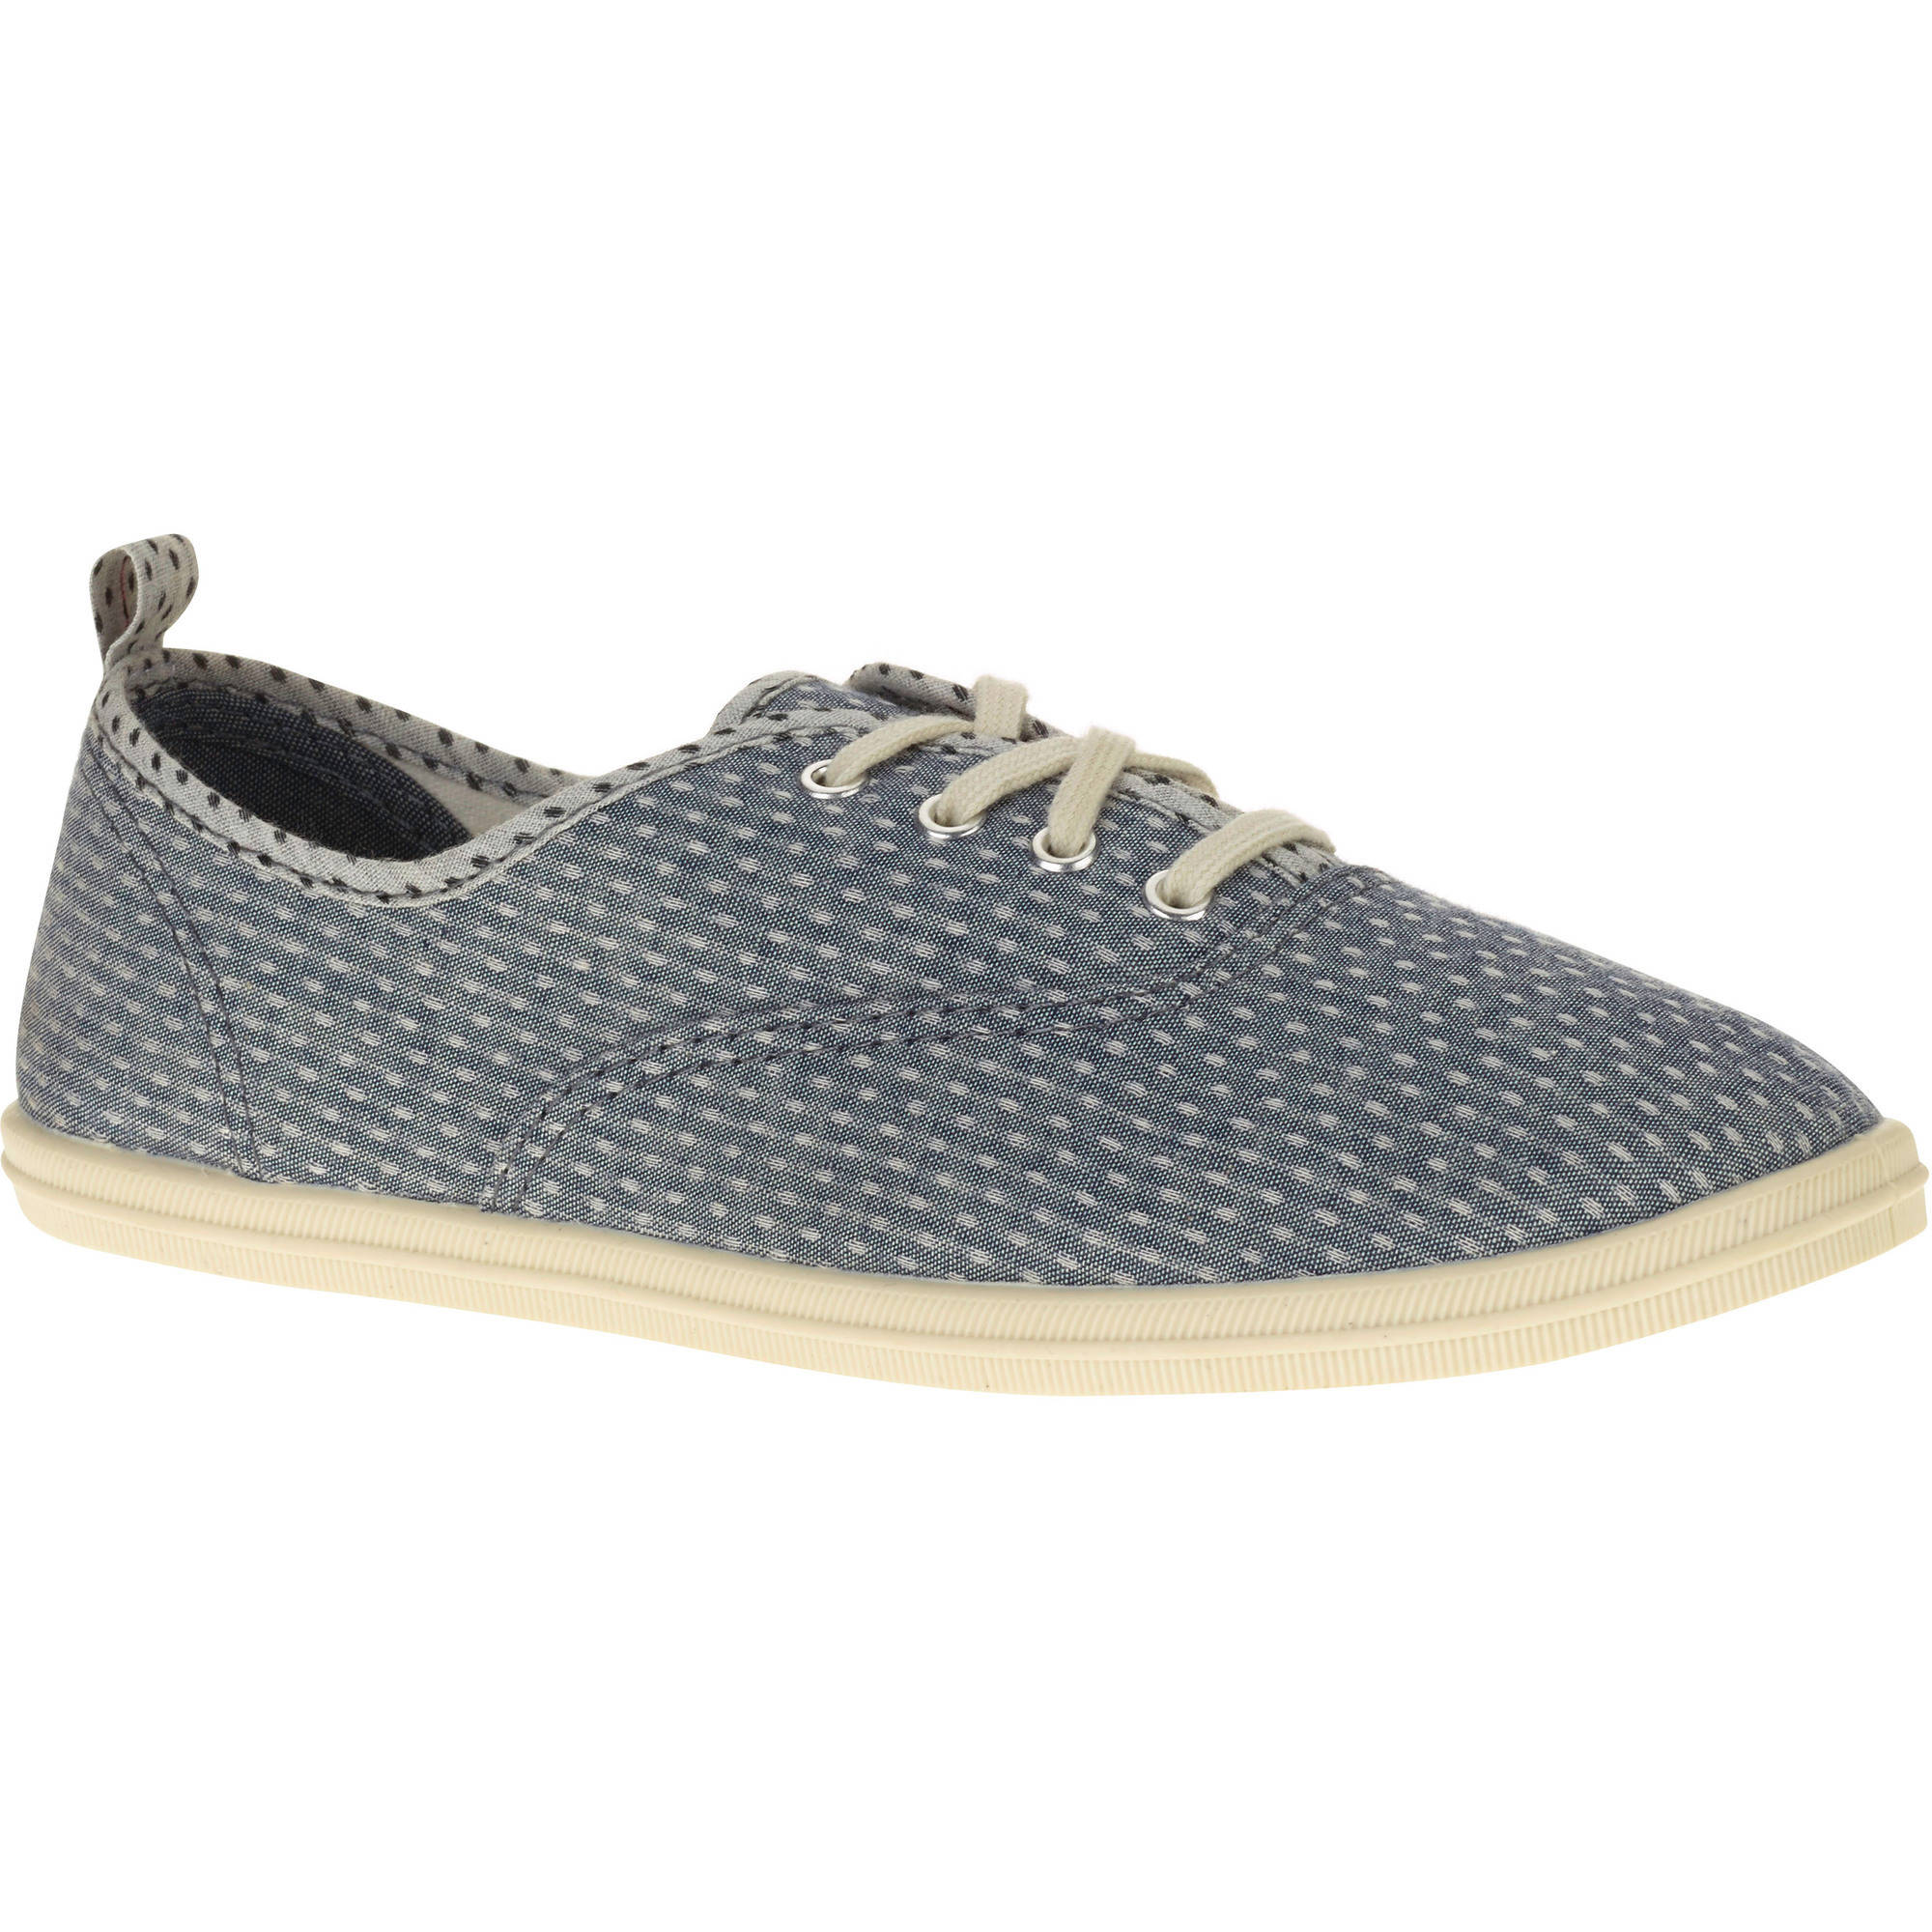 Women's Casual Lace-up